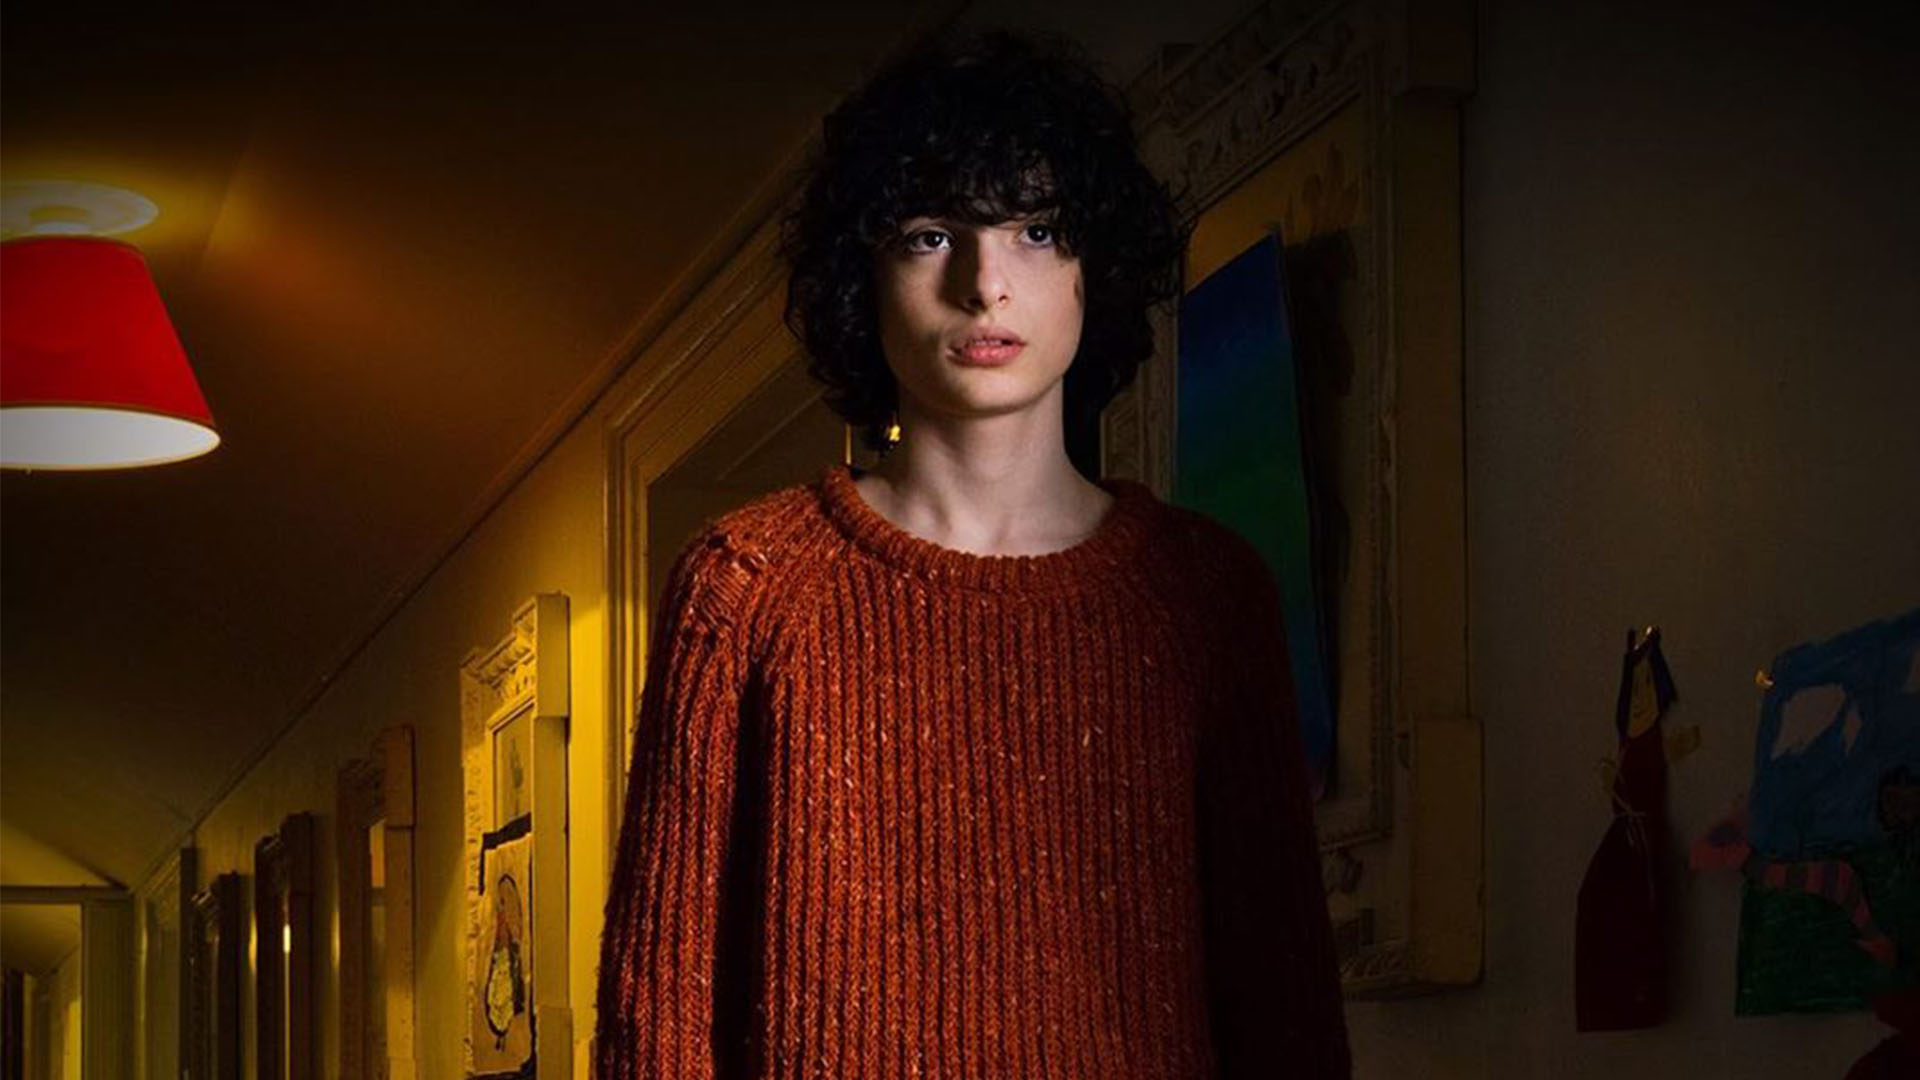 Finn Wolfhard as Miles in The Turning (2020)